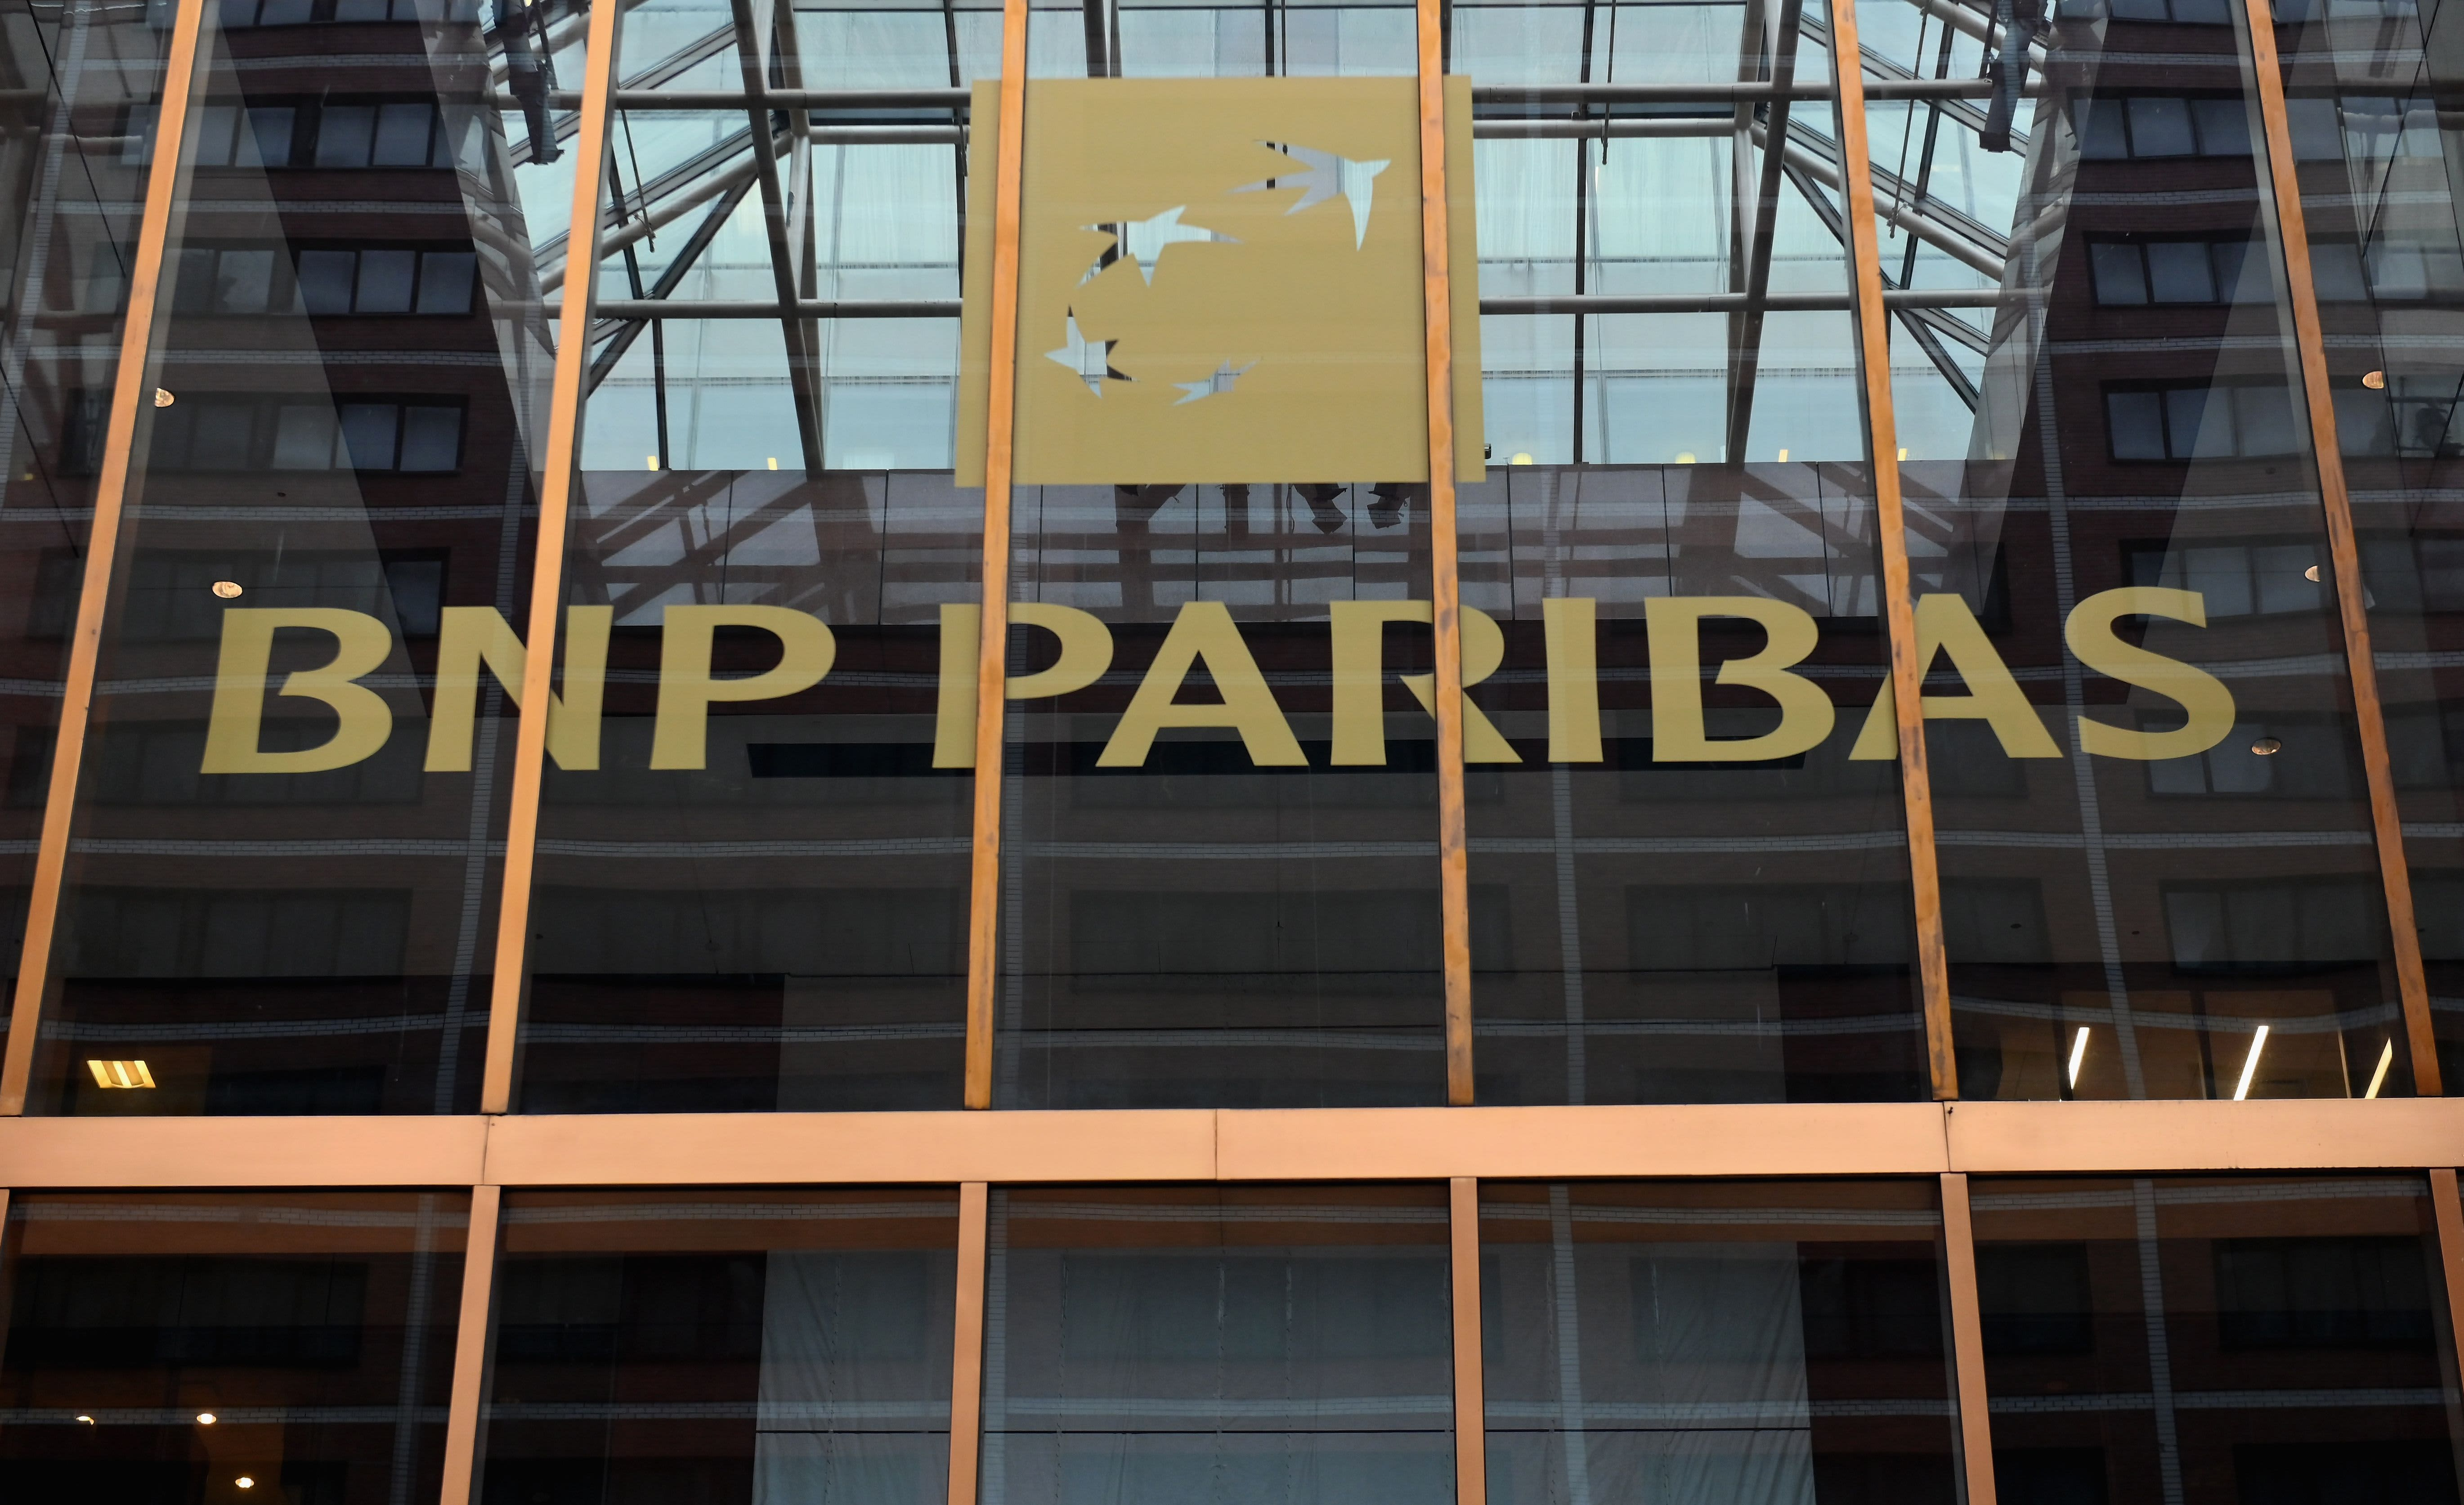 BNP Paribas gets a boost from equity trading as net profit rises 11%